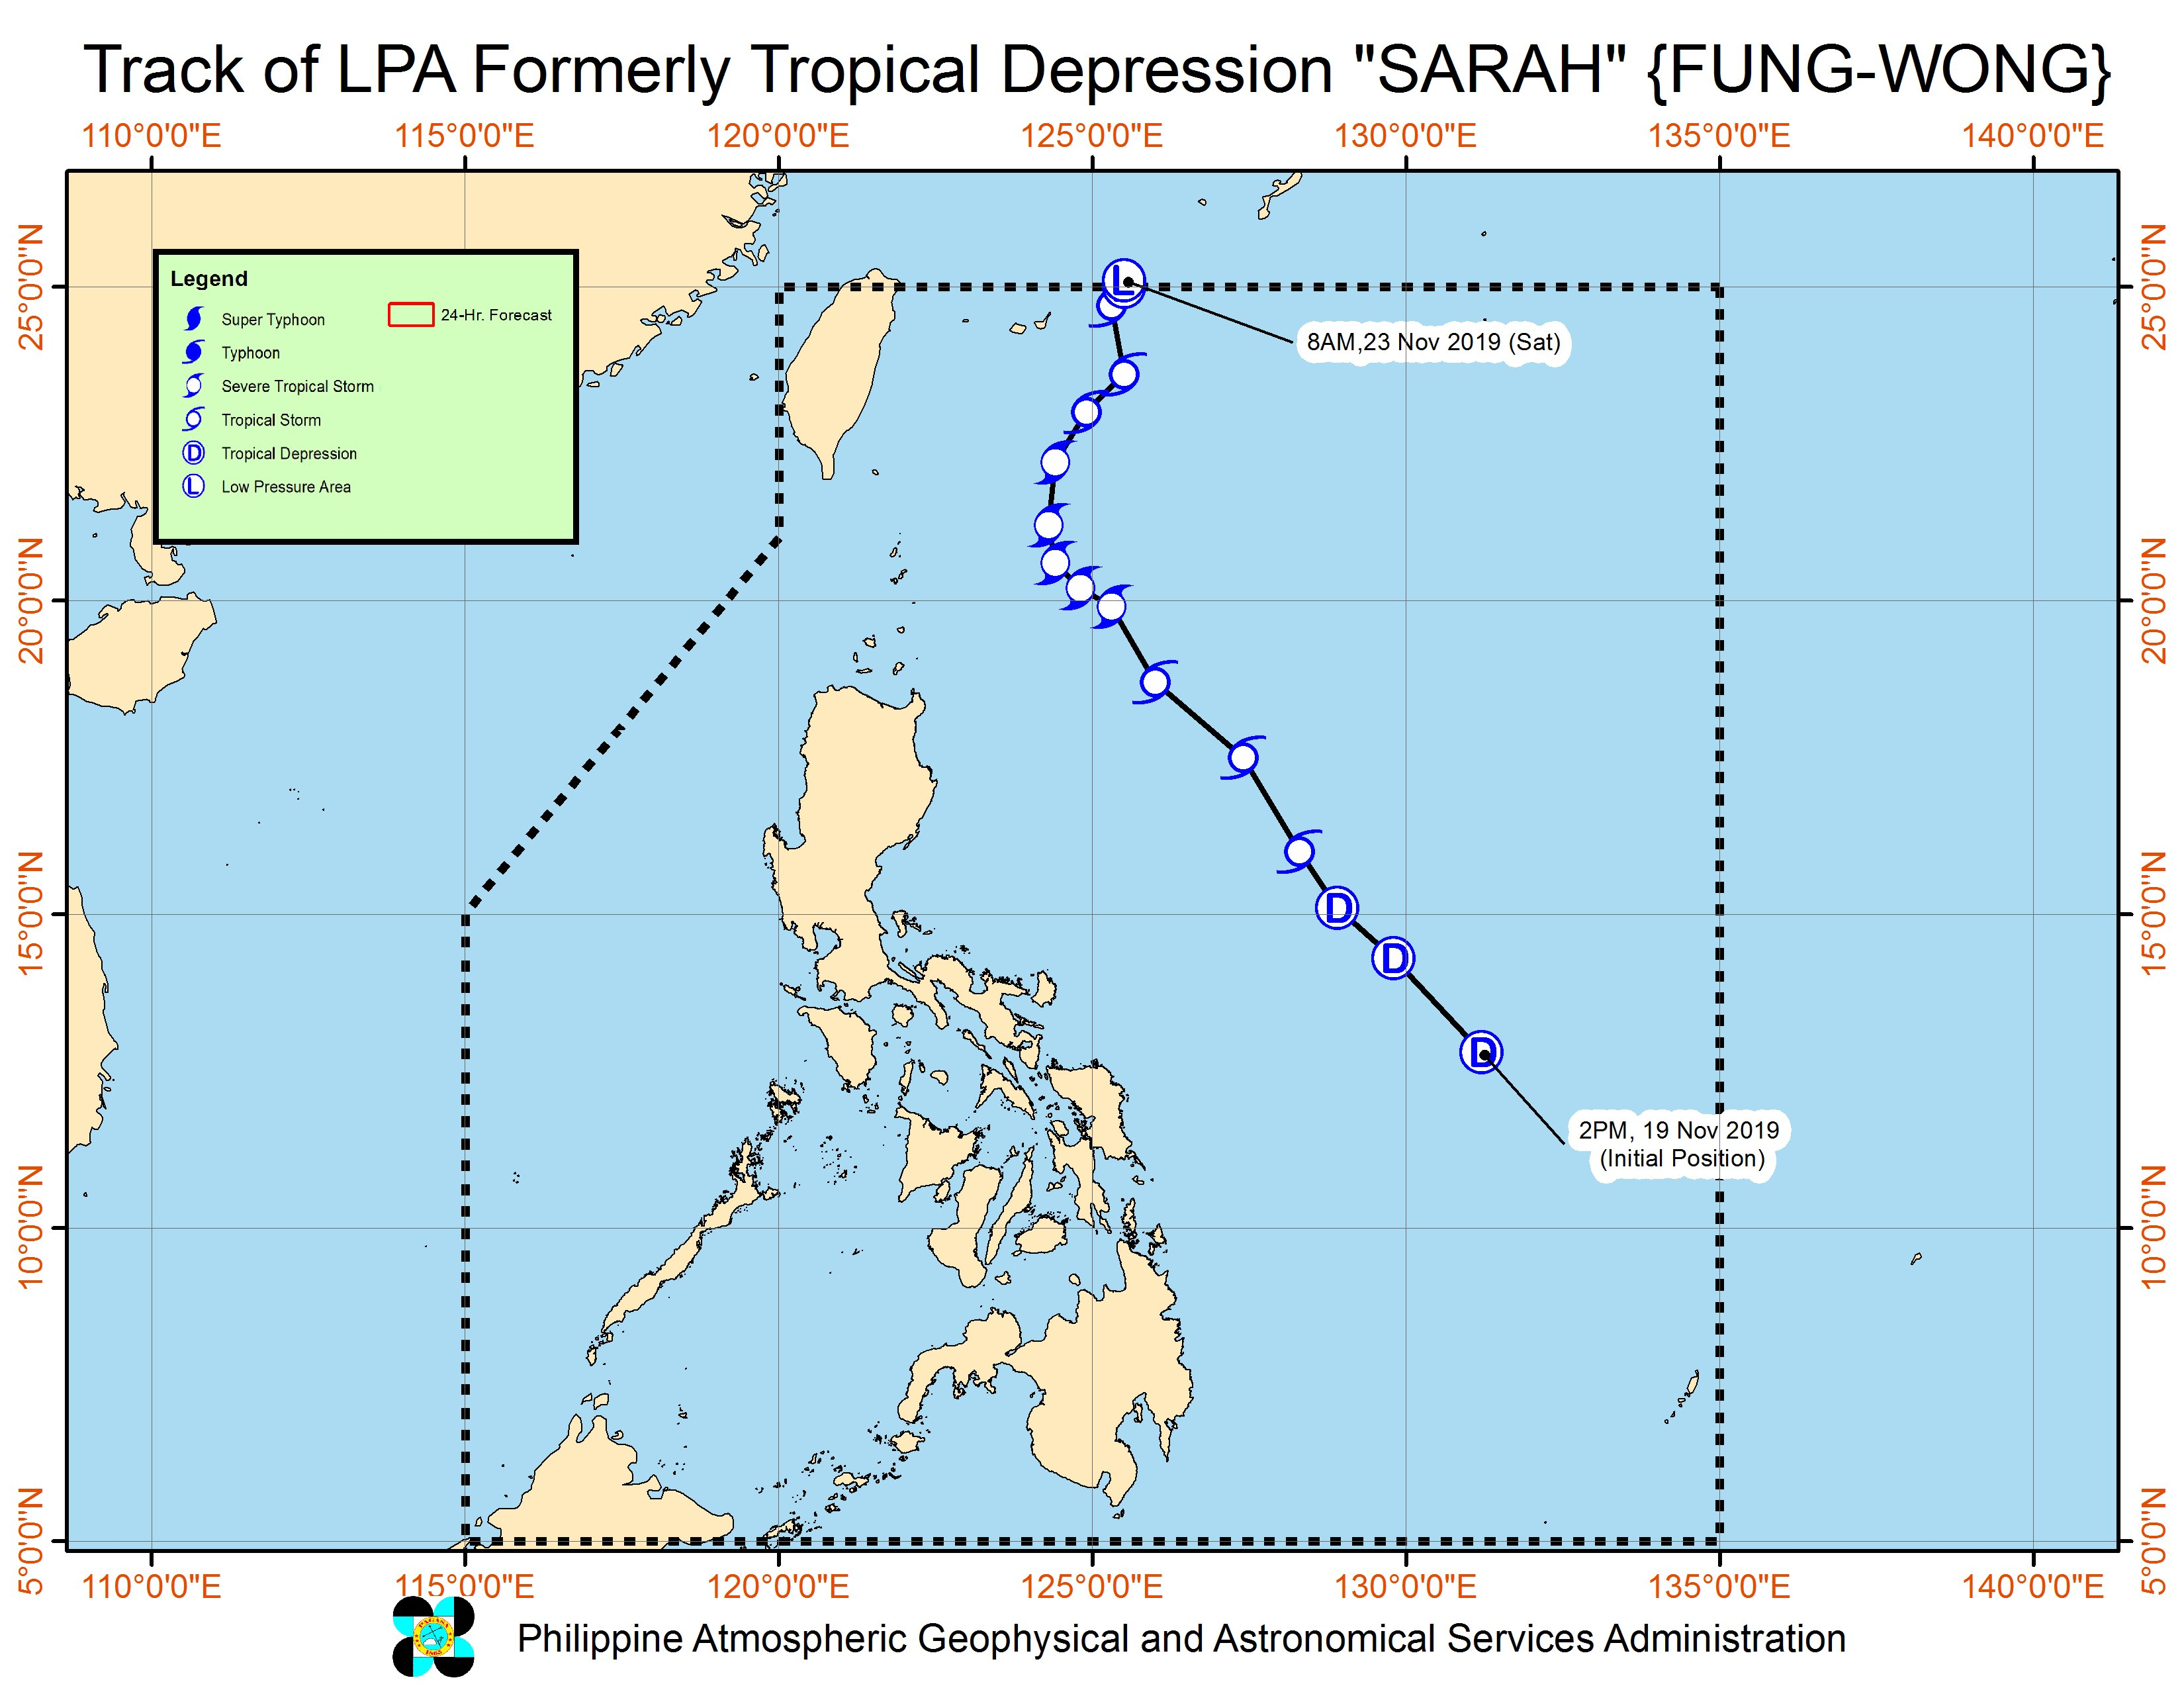 Forecast track of the low pressure area which used to be Tropical Depression Sarah (Fung-wong), as of November 23, 2019, 11 am. Image from PAGASA